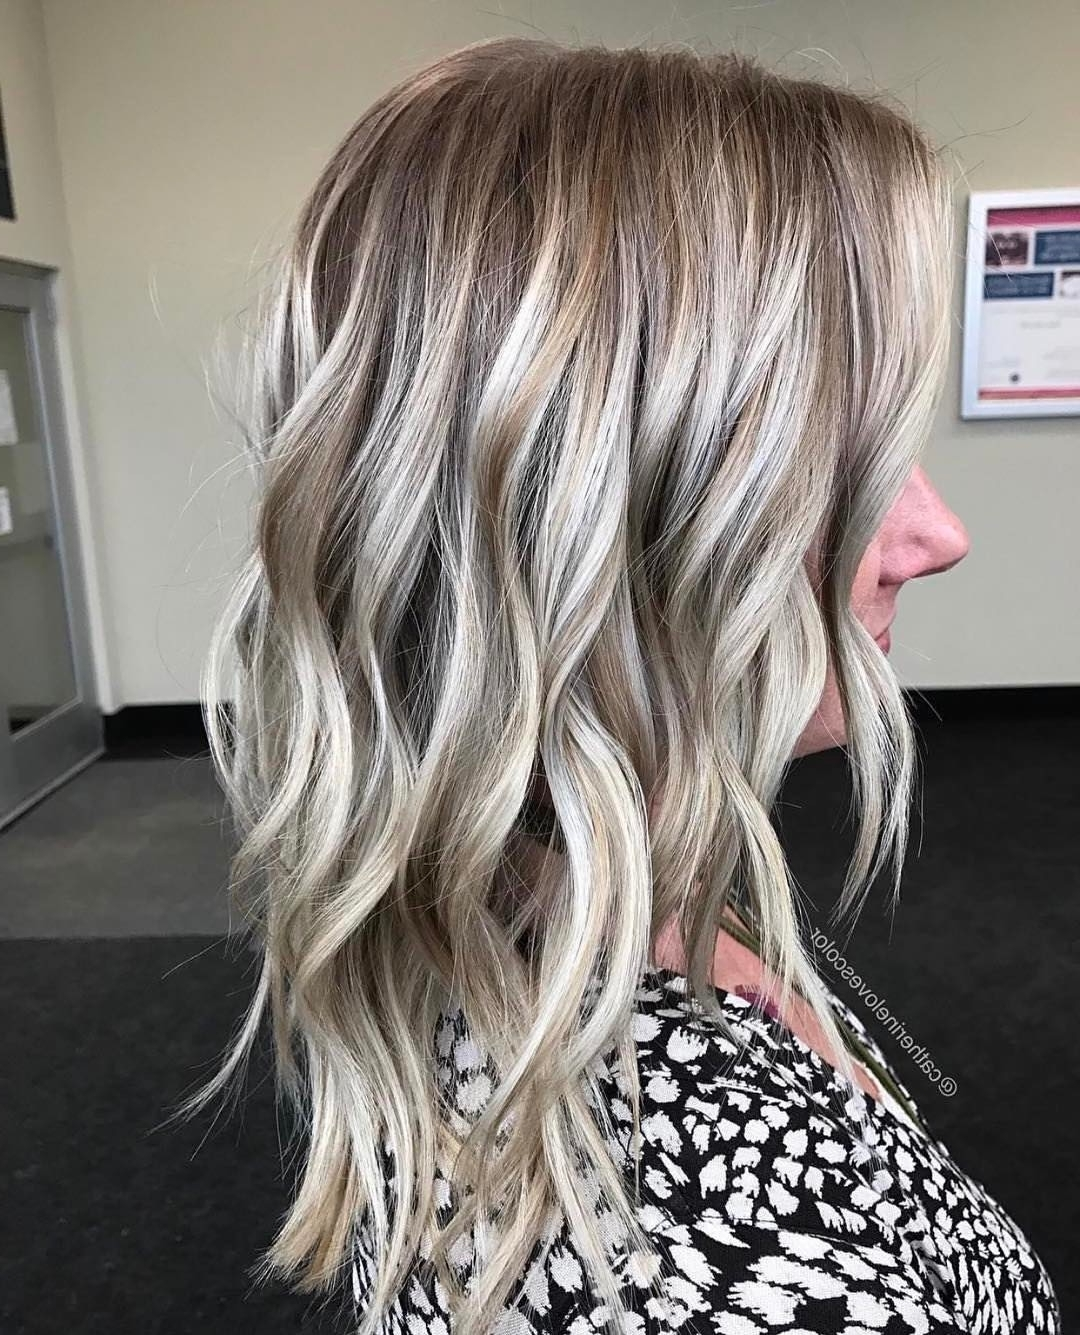 Famous Dark Blonde Into White Hairstyles With Regard To 20 Adorable Ash Blonde Hairstyles To Try: Hair Color Ideas  (View 11 of 20)